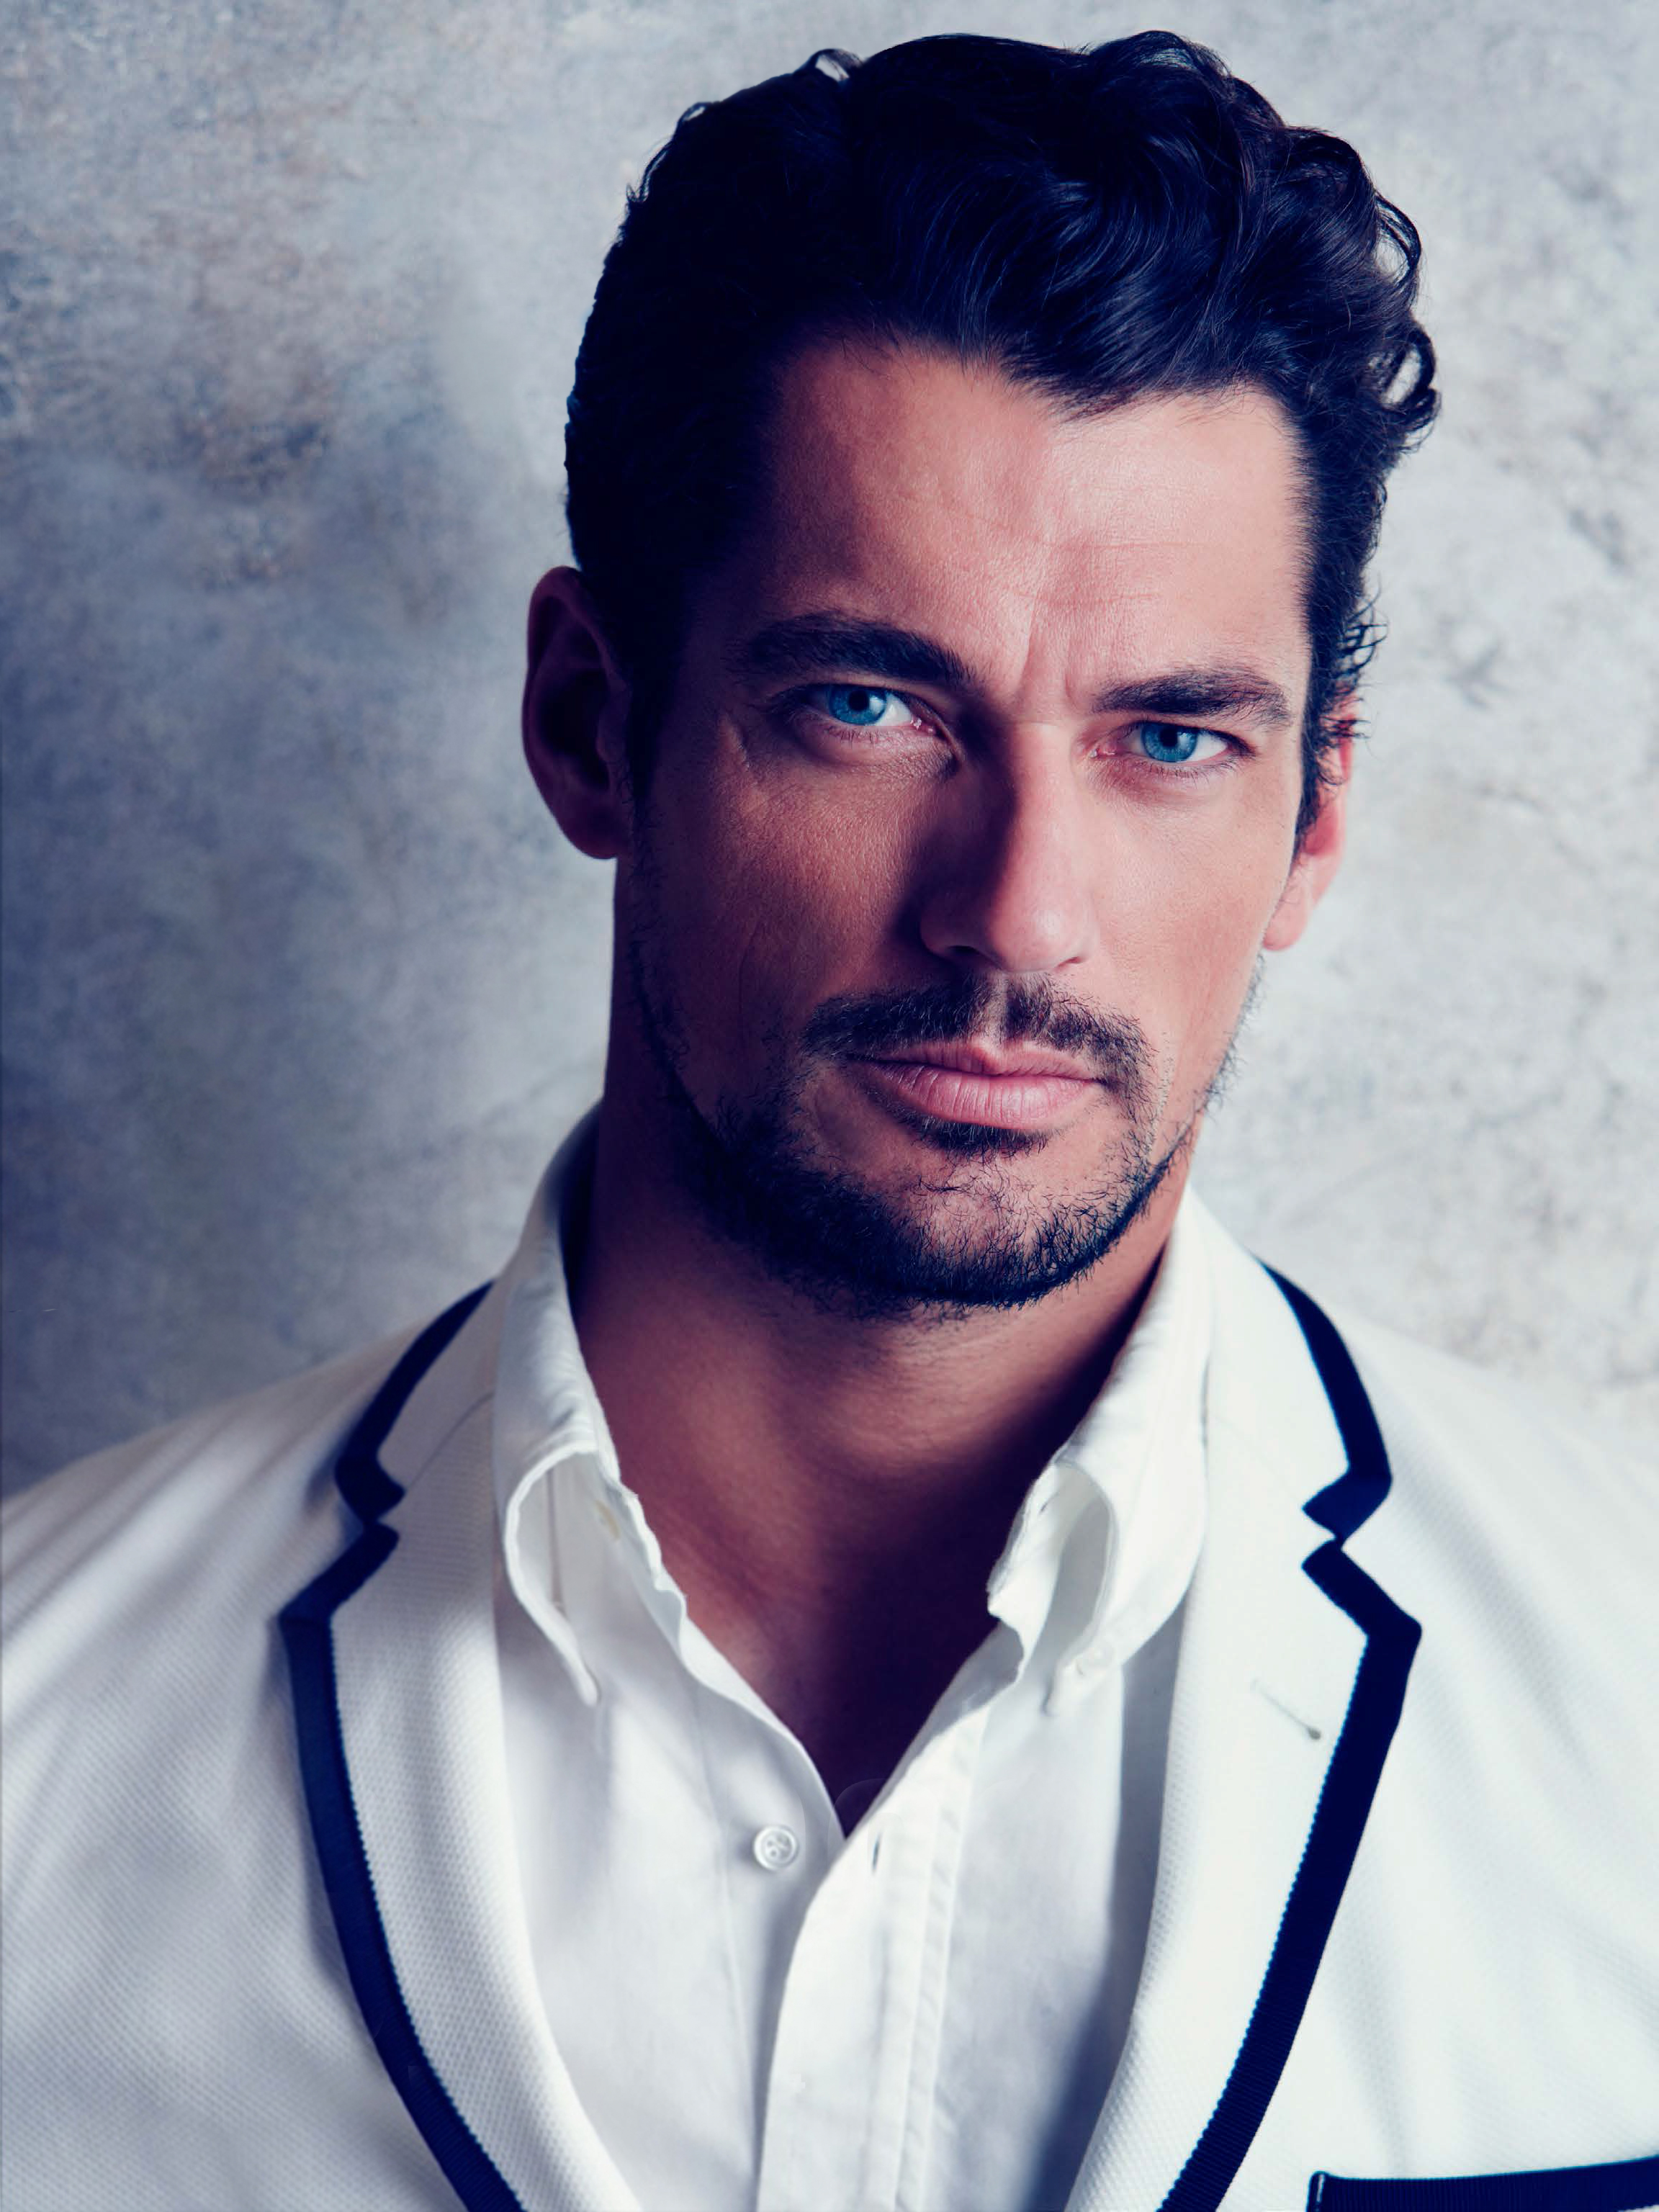 david gandy glassesdavid gandy young, david gandy 2017, david gandy gif, david gandy instagram, david gandy style, david gandy биография, david gandy for autograph, david gandy vk, david gandy tumblr, david gandy photo, david gandy glasses, david gandy фото, david gandy wiki, david gandy by dolce & gabbana, david gandy haircut, david gandy model, david gandy suit, david gandy diet, david gandy street style, david gandy official